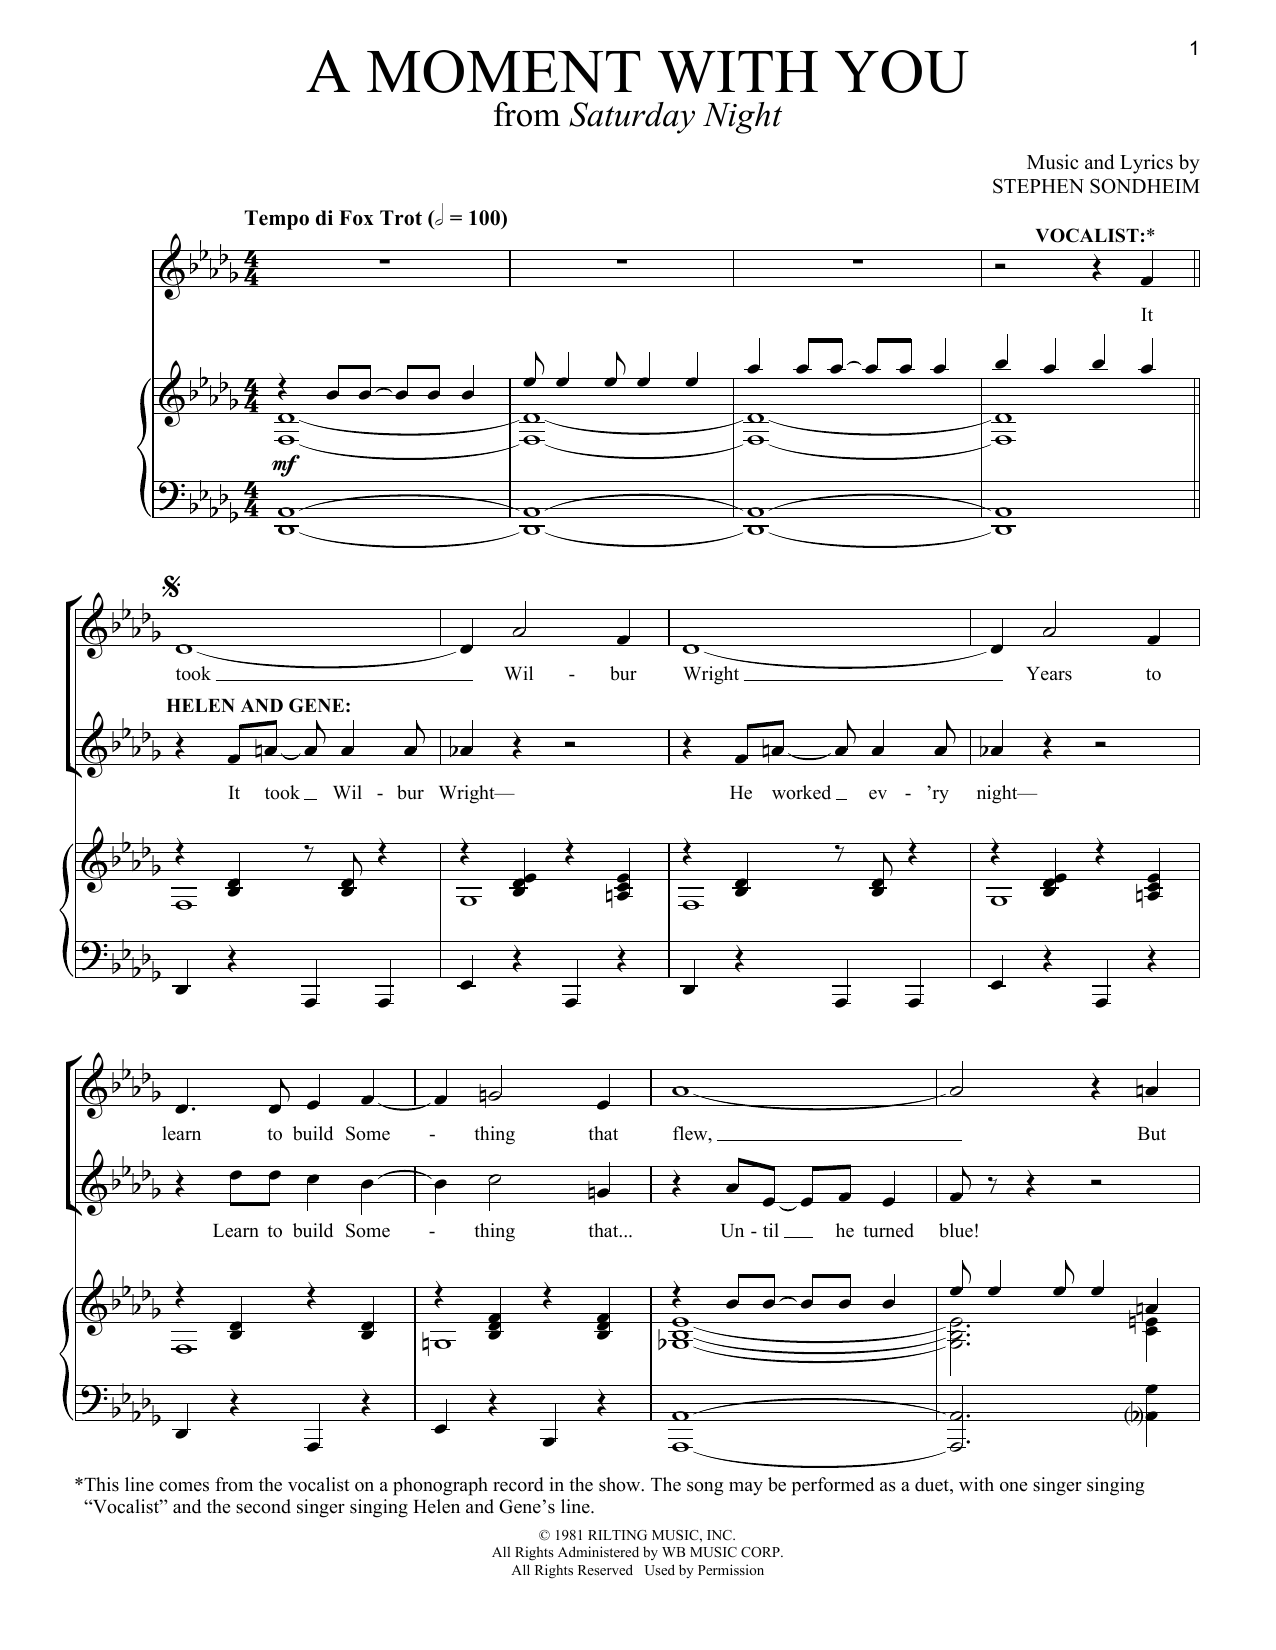 Stephen Sondheim A Moment With You sheet music notes and chords